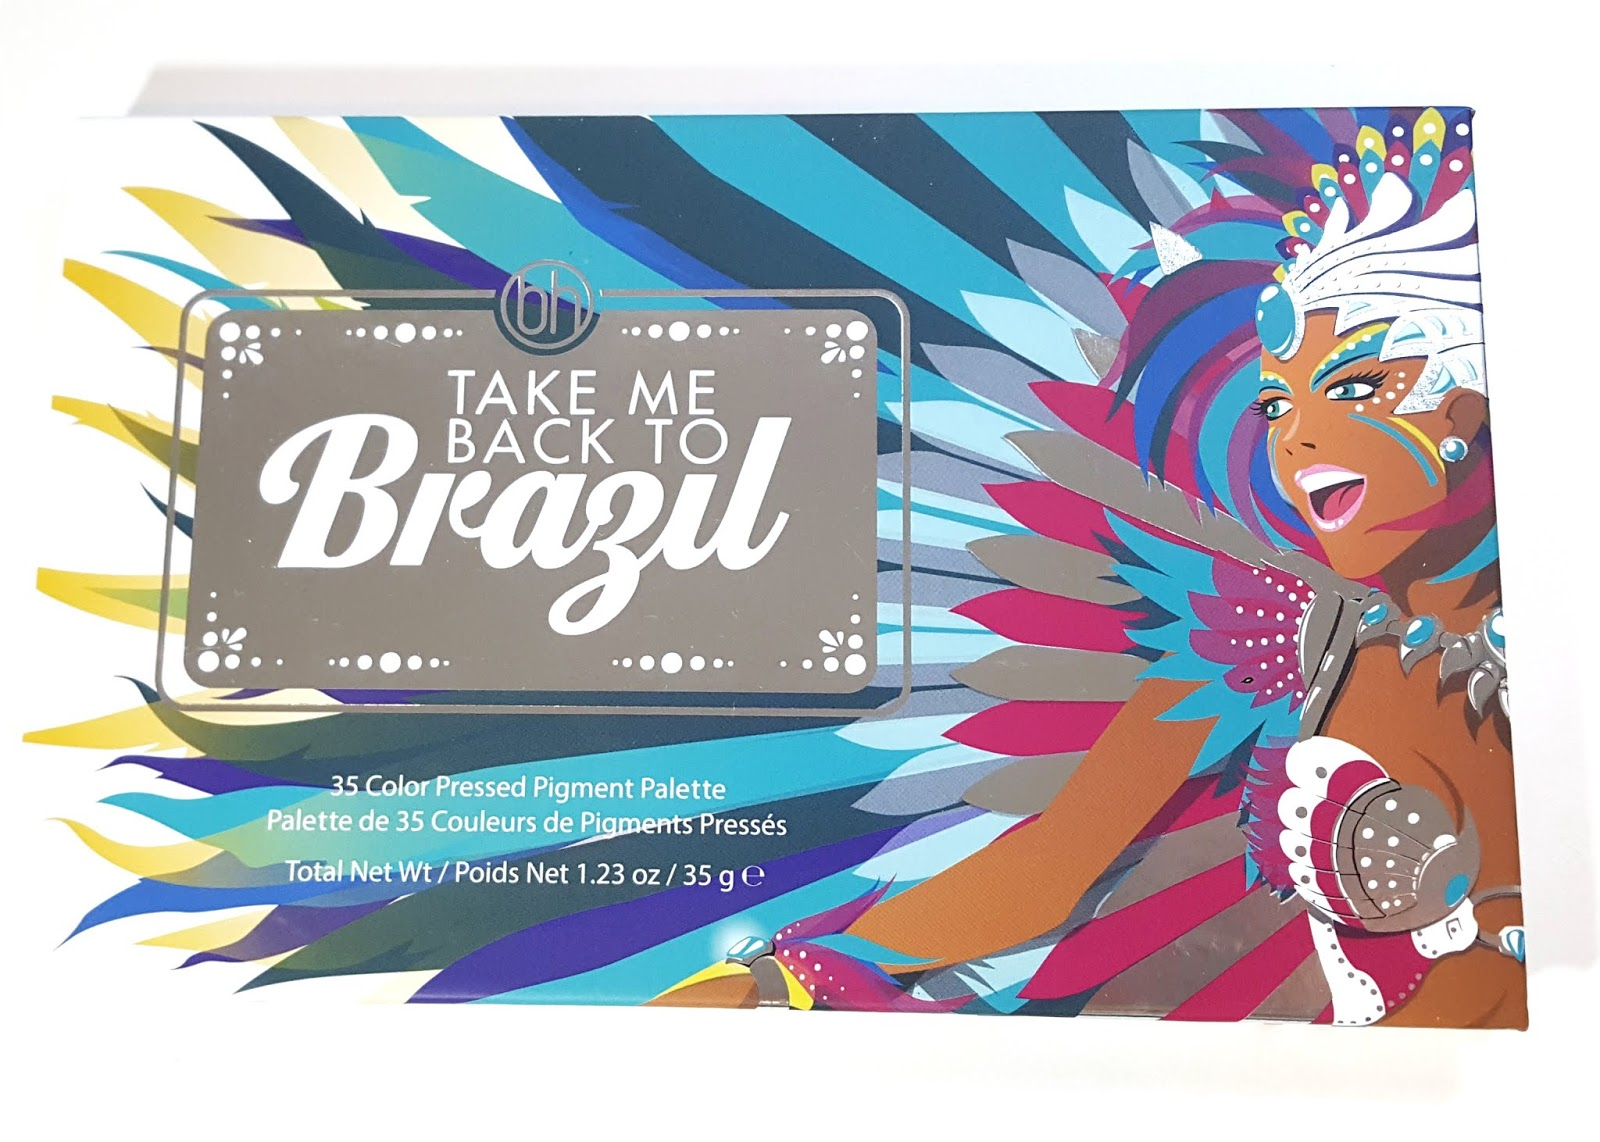 bh cosmetics take me back to brazil eyeshadow palette review pretty in bronze. Black Bedroom Furniture Sets. Home Design Ideas